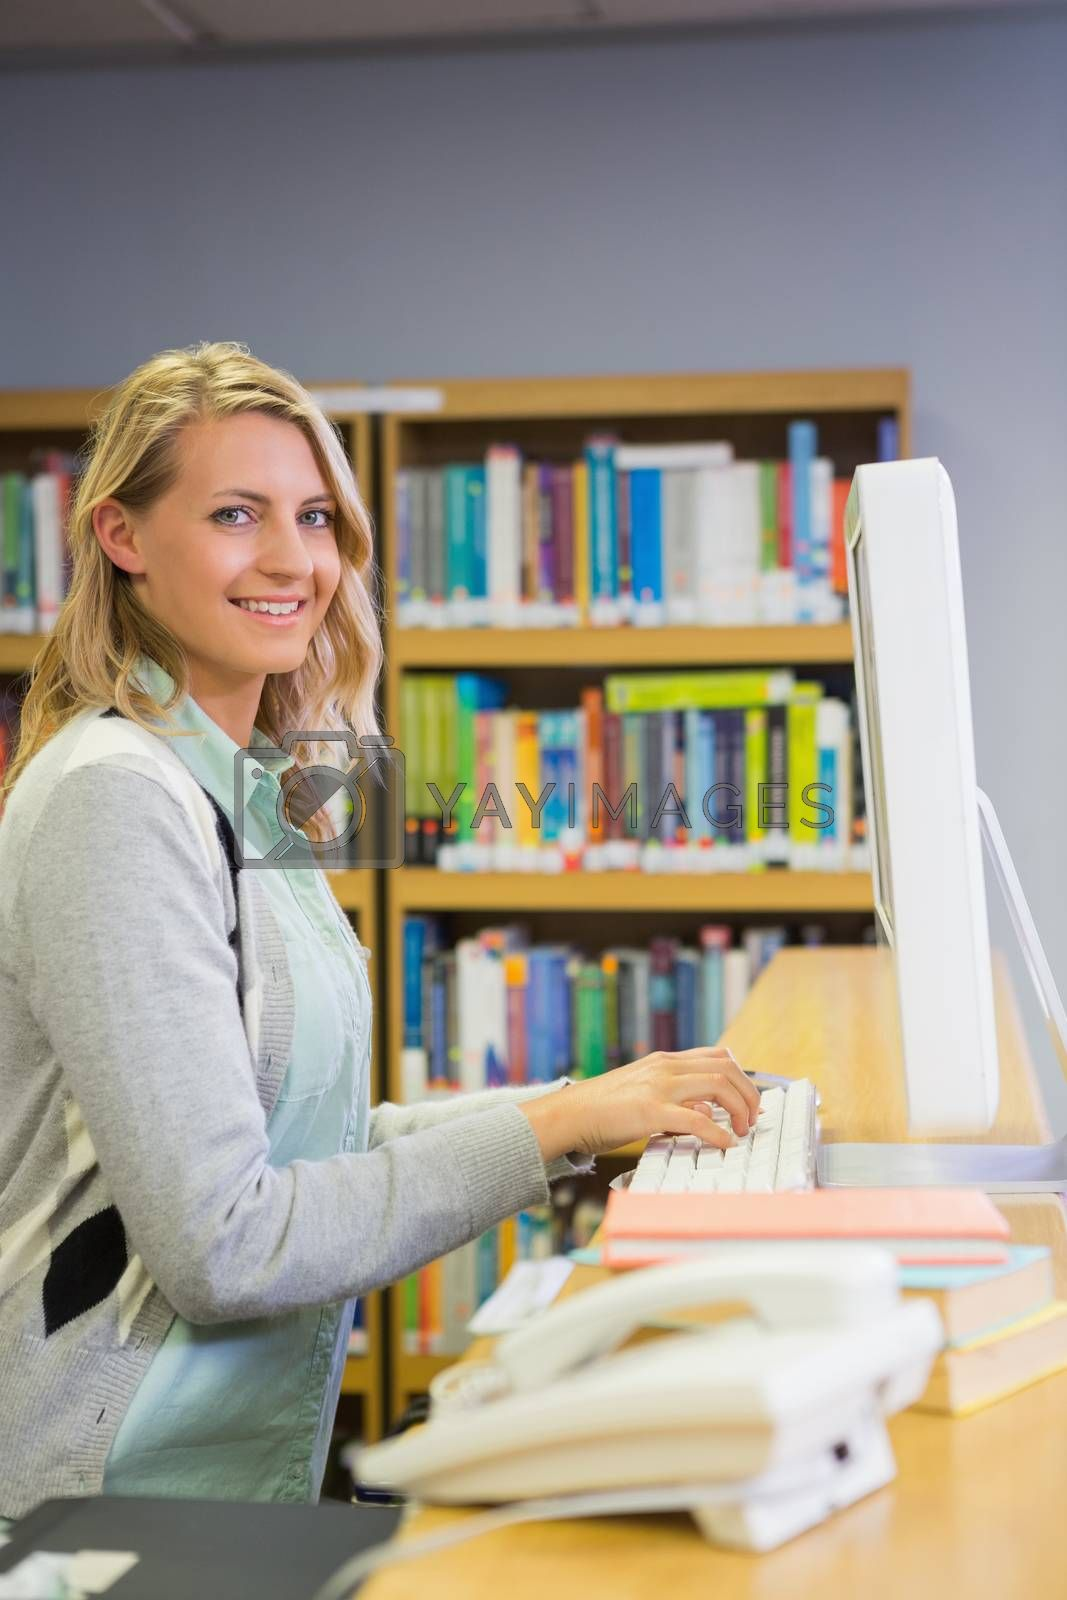 Pretty librarian working in the library by Wavebreakmedia